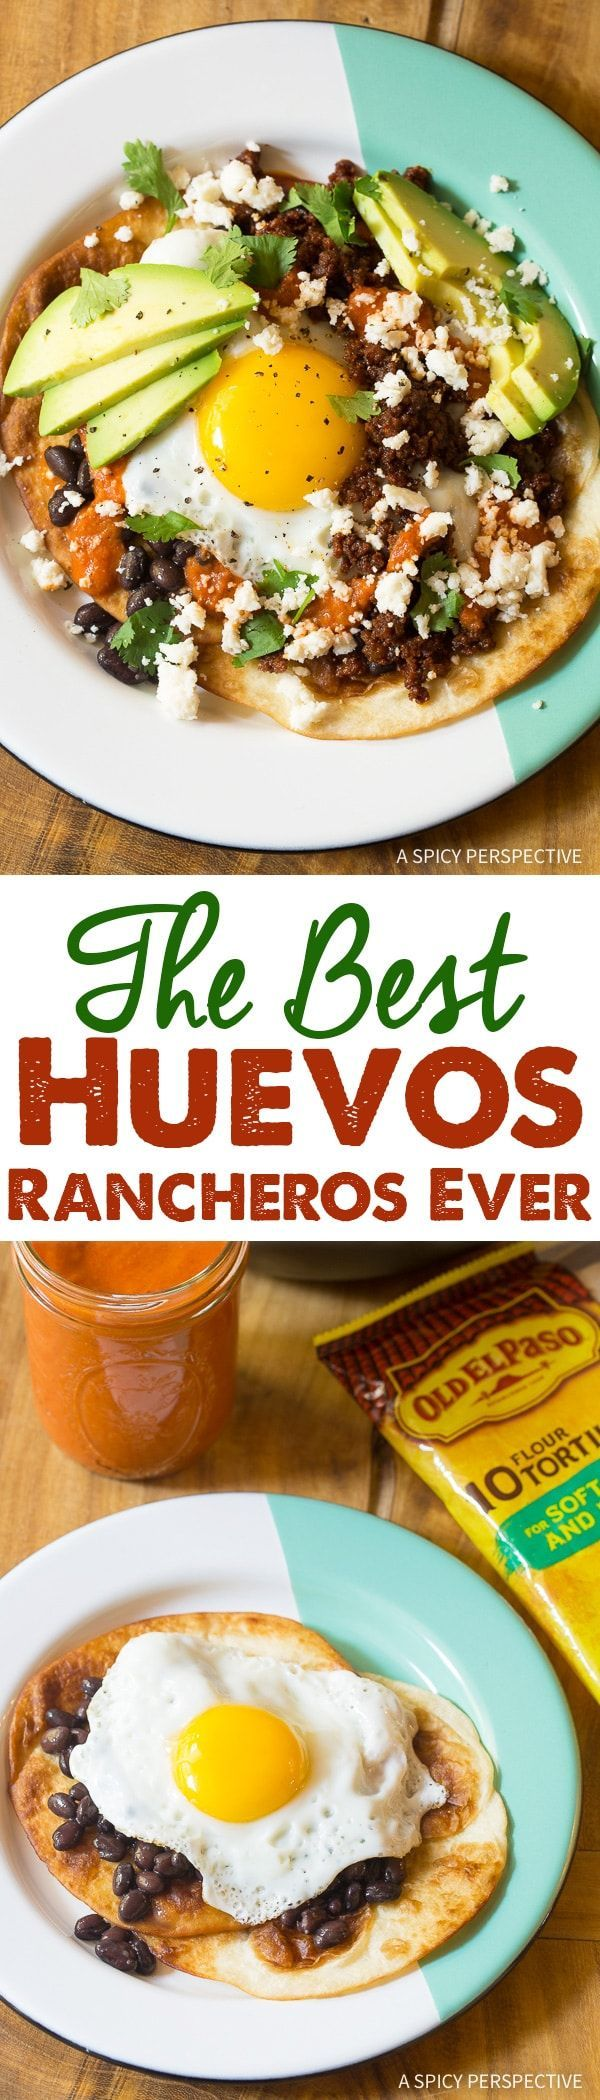 The Best Huevos Rancheros Recipe, starts with the absolute best Ranchero Sauce! Make the sauce first, then whip up amazing Huevos Rancheros any time you like. via @spicyperspectiv